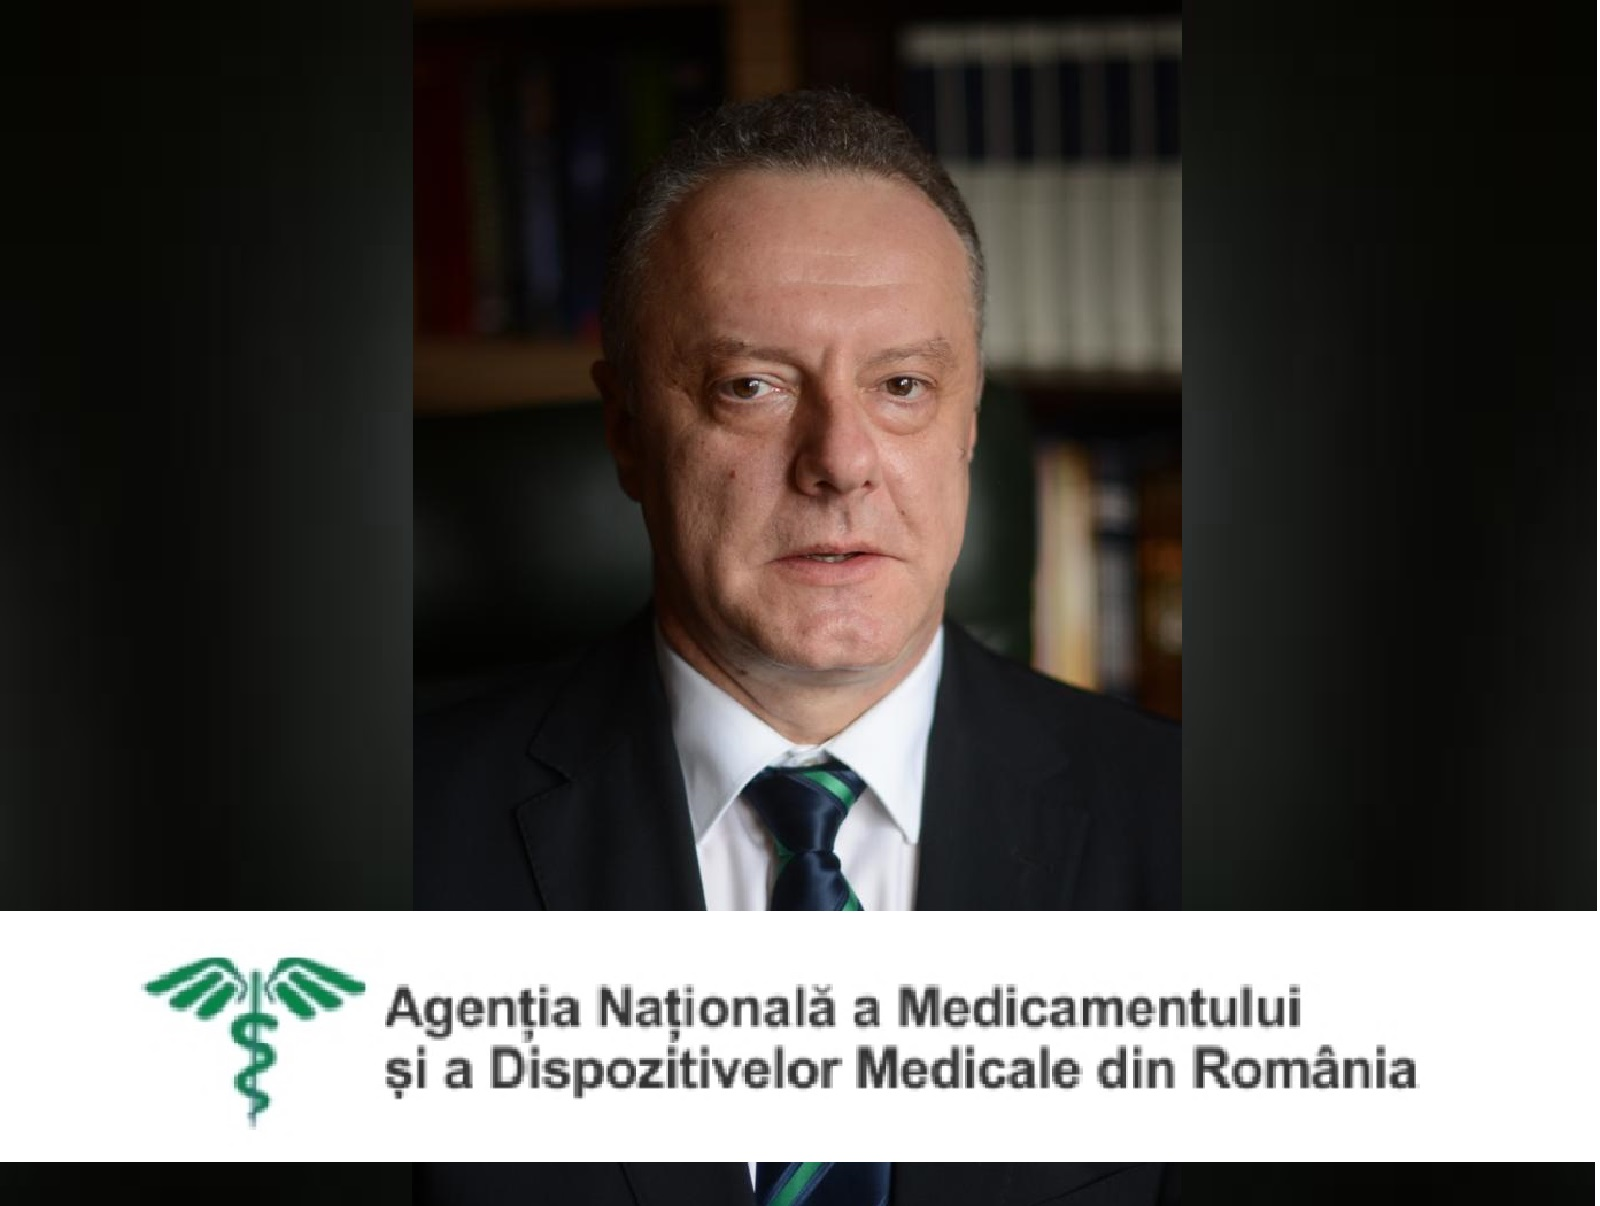 Dr. Eugen Bujor Almasan is the new interim president of Competent Authority (NAMMDR)